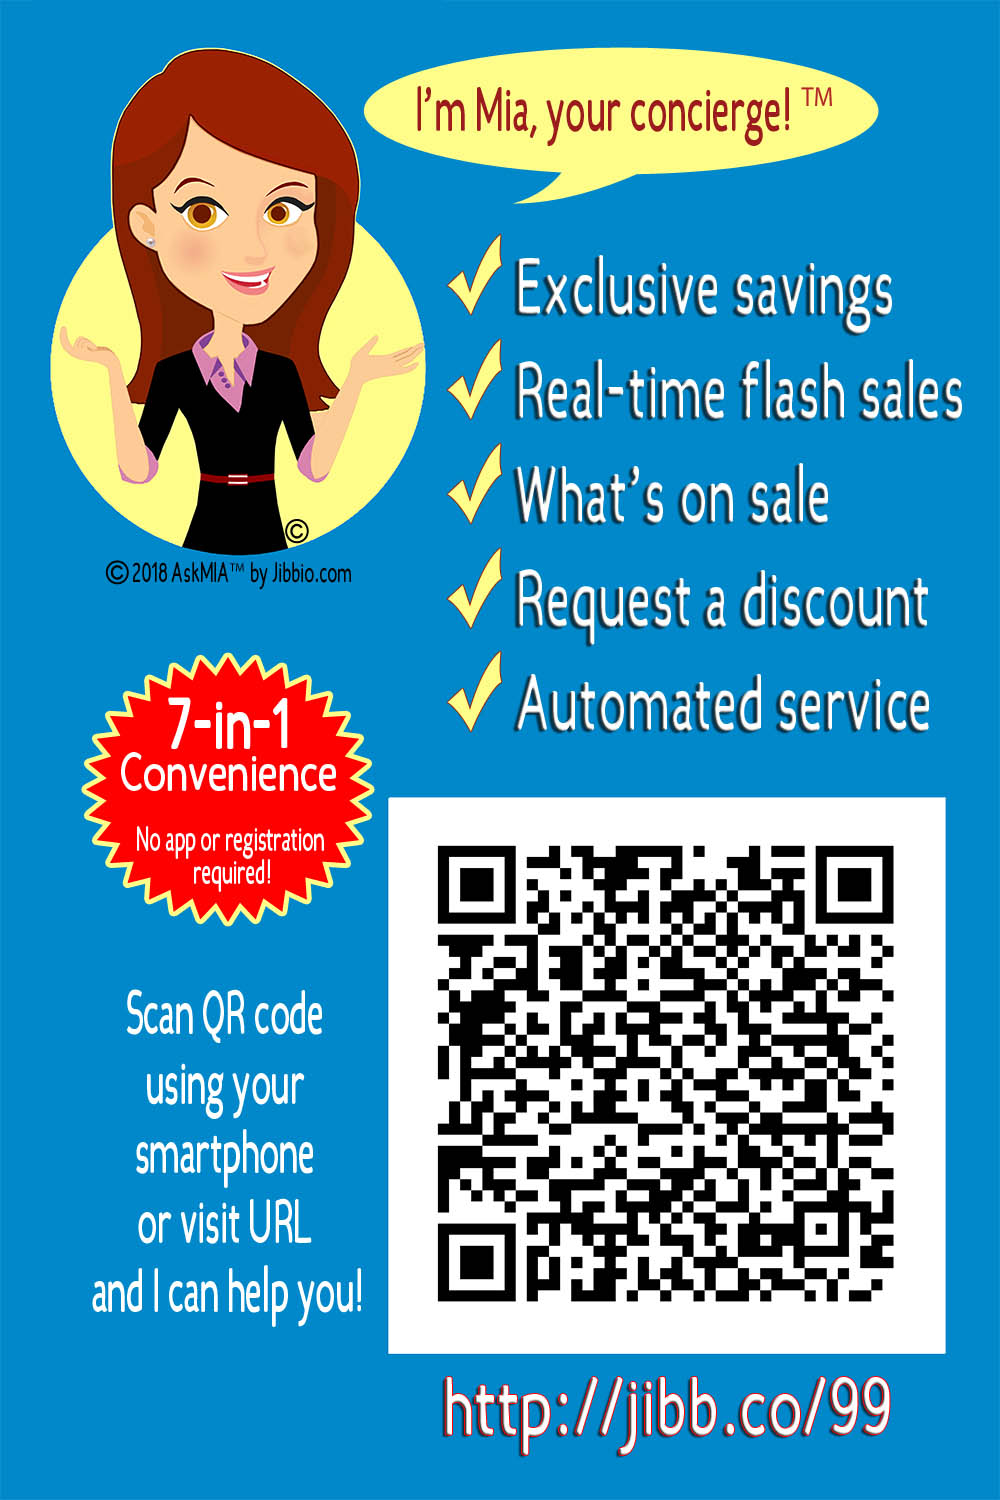 We will create an AskMIA poster with customized text for your business to post in store and print media